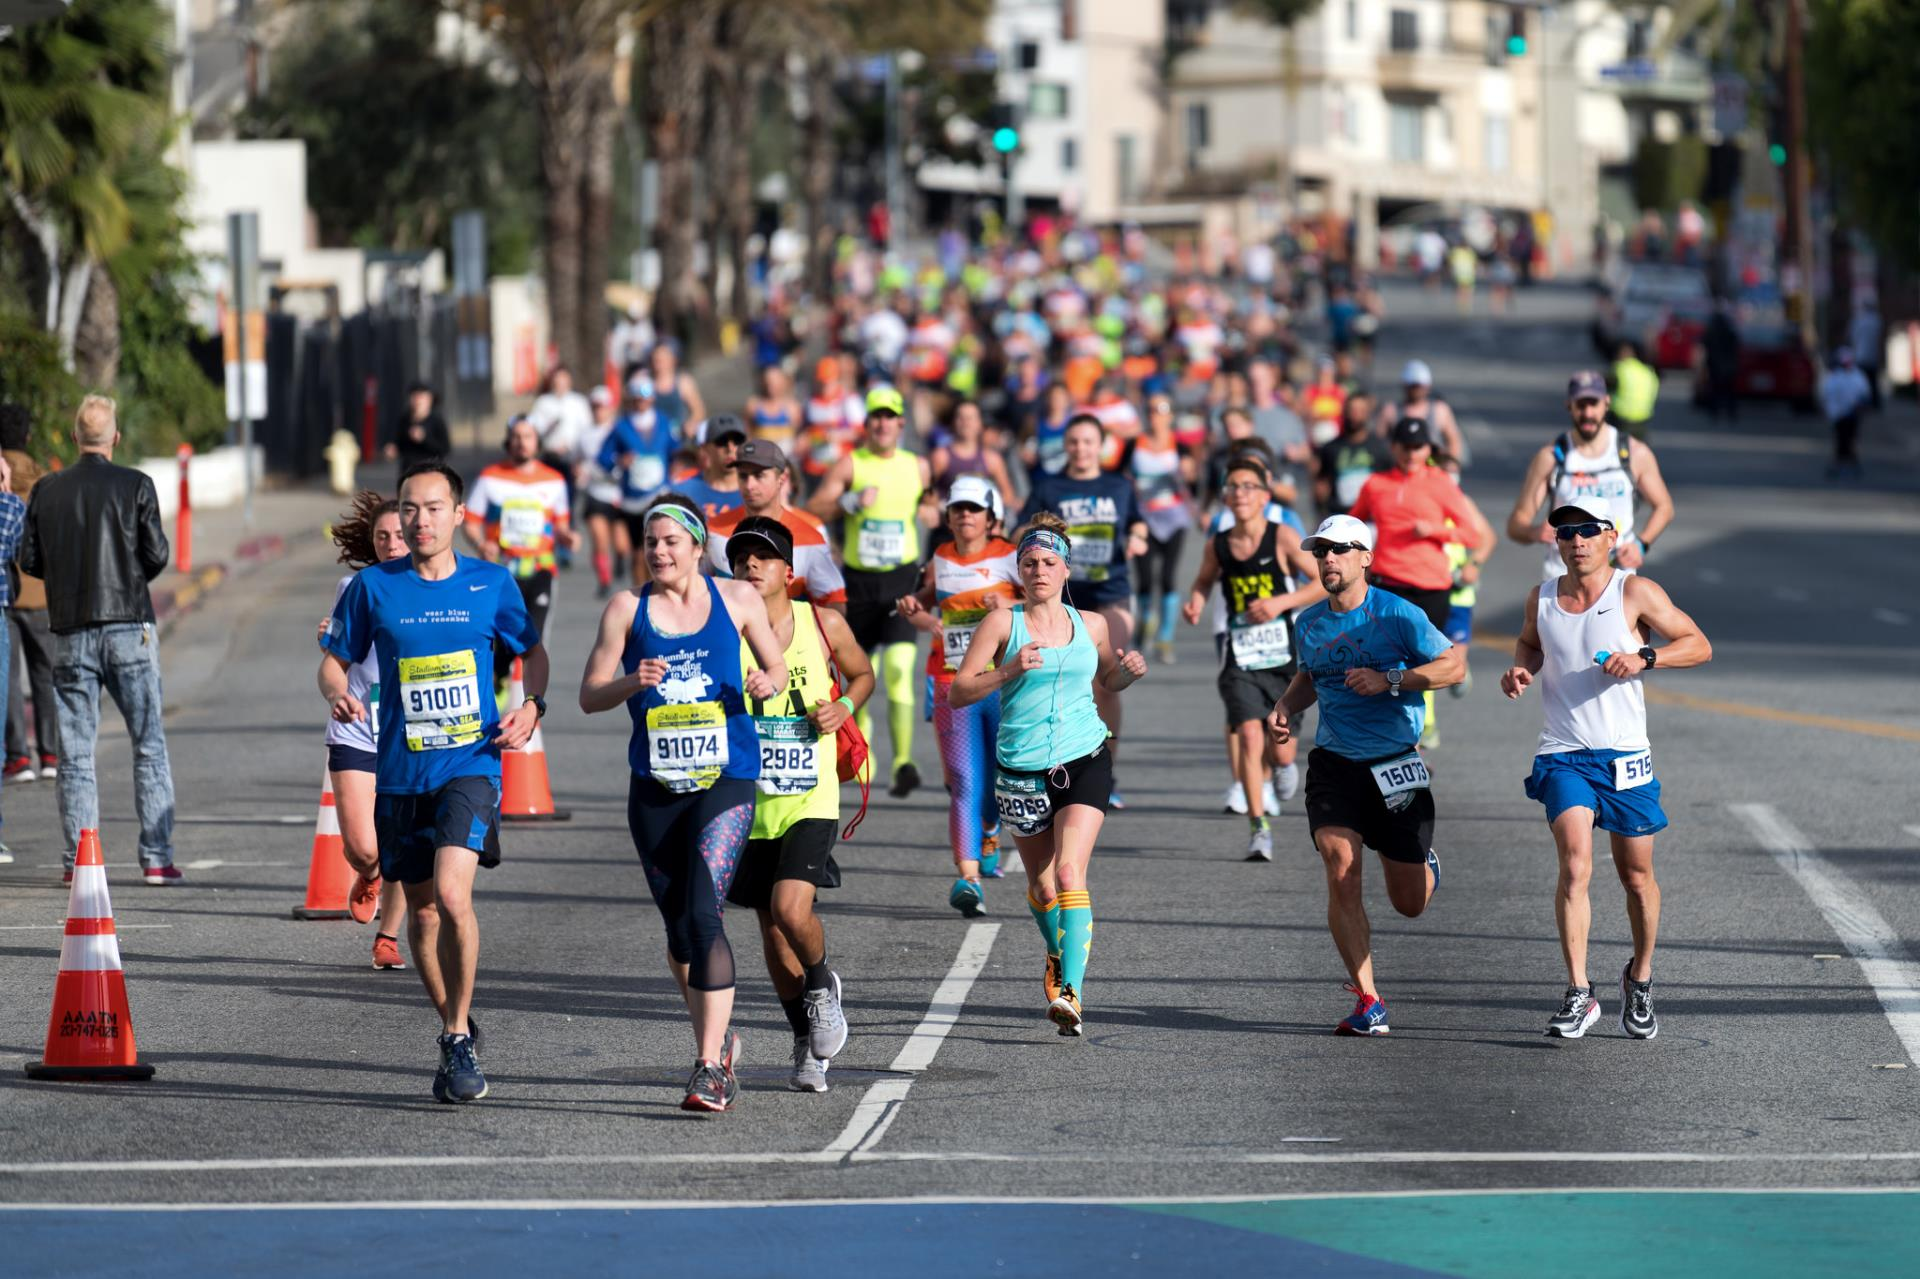 City Welcomes Runners in the 2019 Skechers Performance L.A. Marathon